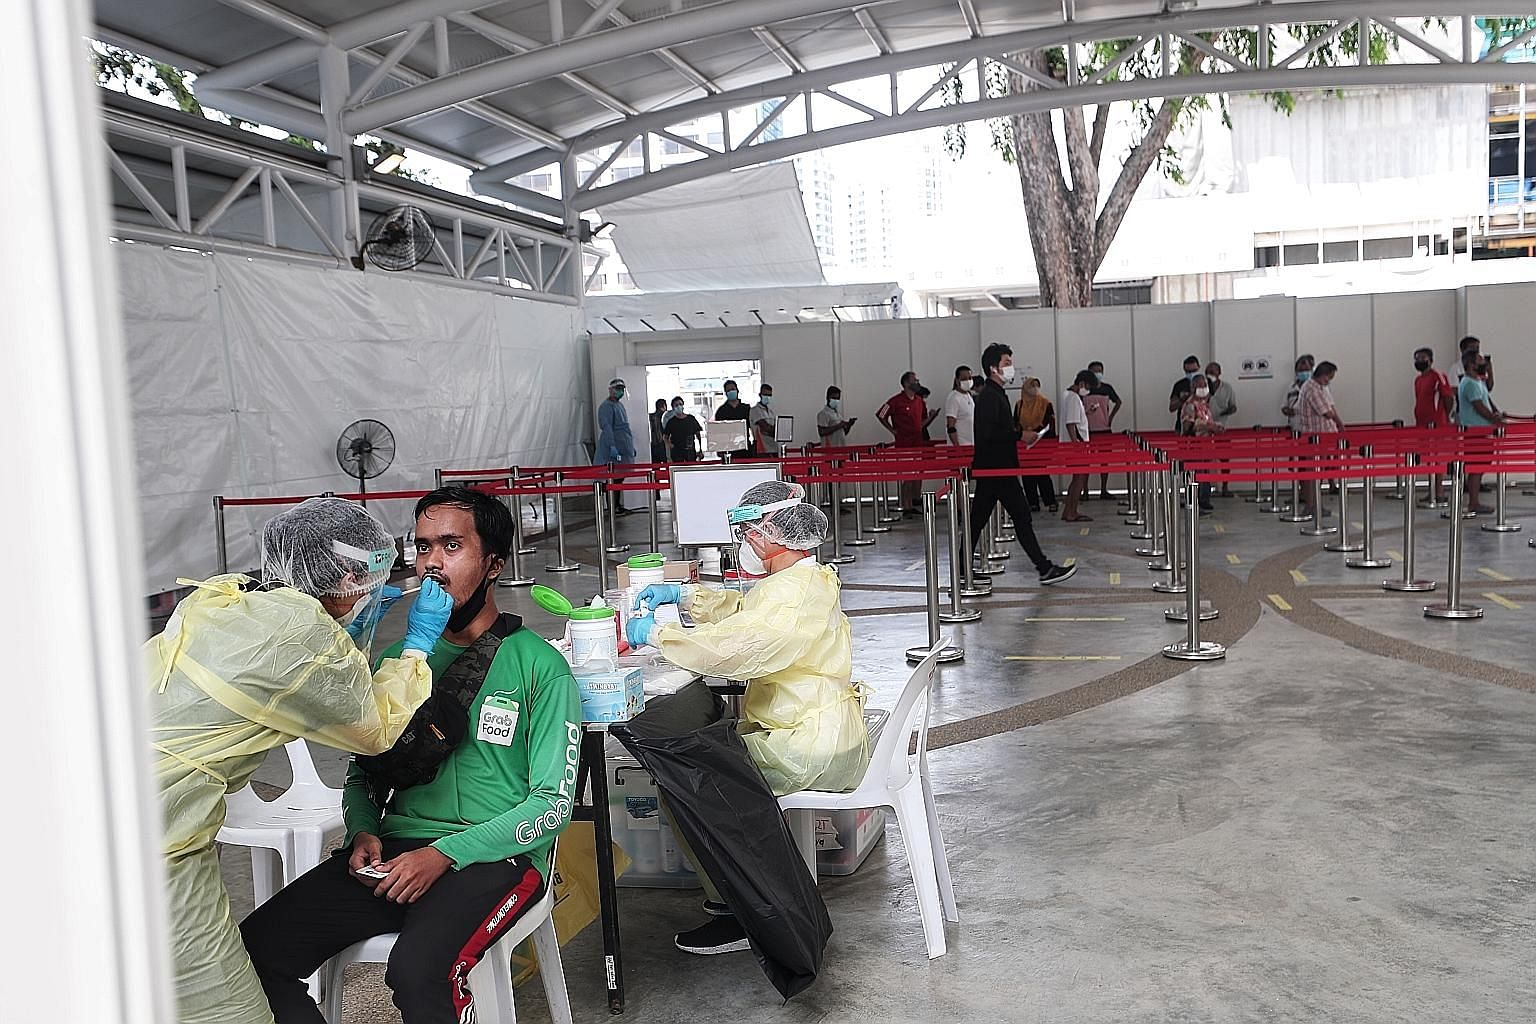 Top: Grab rider Muhd Raidan, 29, getting tested for Covid-19 at a temporary swabbing centre at the pavilion beside Block 75 Marine Drive yesterday. Above: Temasek chief executive Ho Ching and Emeritus Senior Minister Goh Chok Tong observing the testi